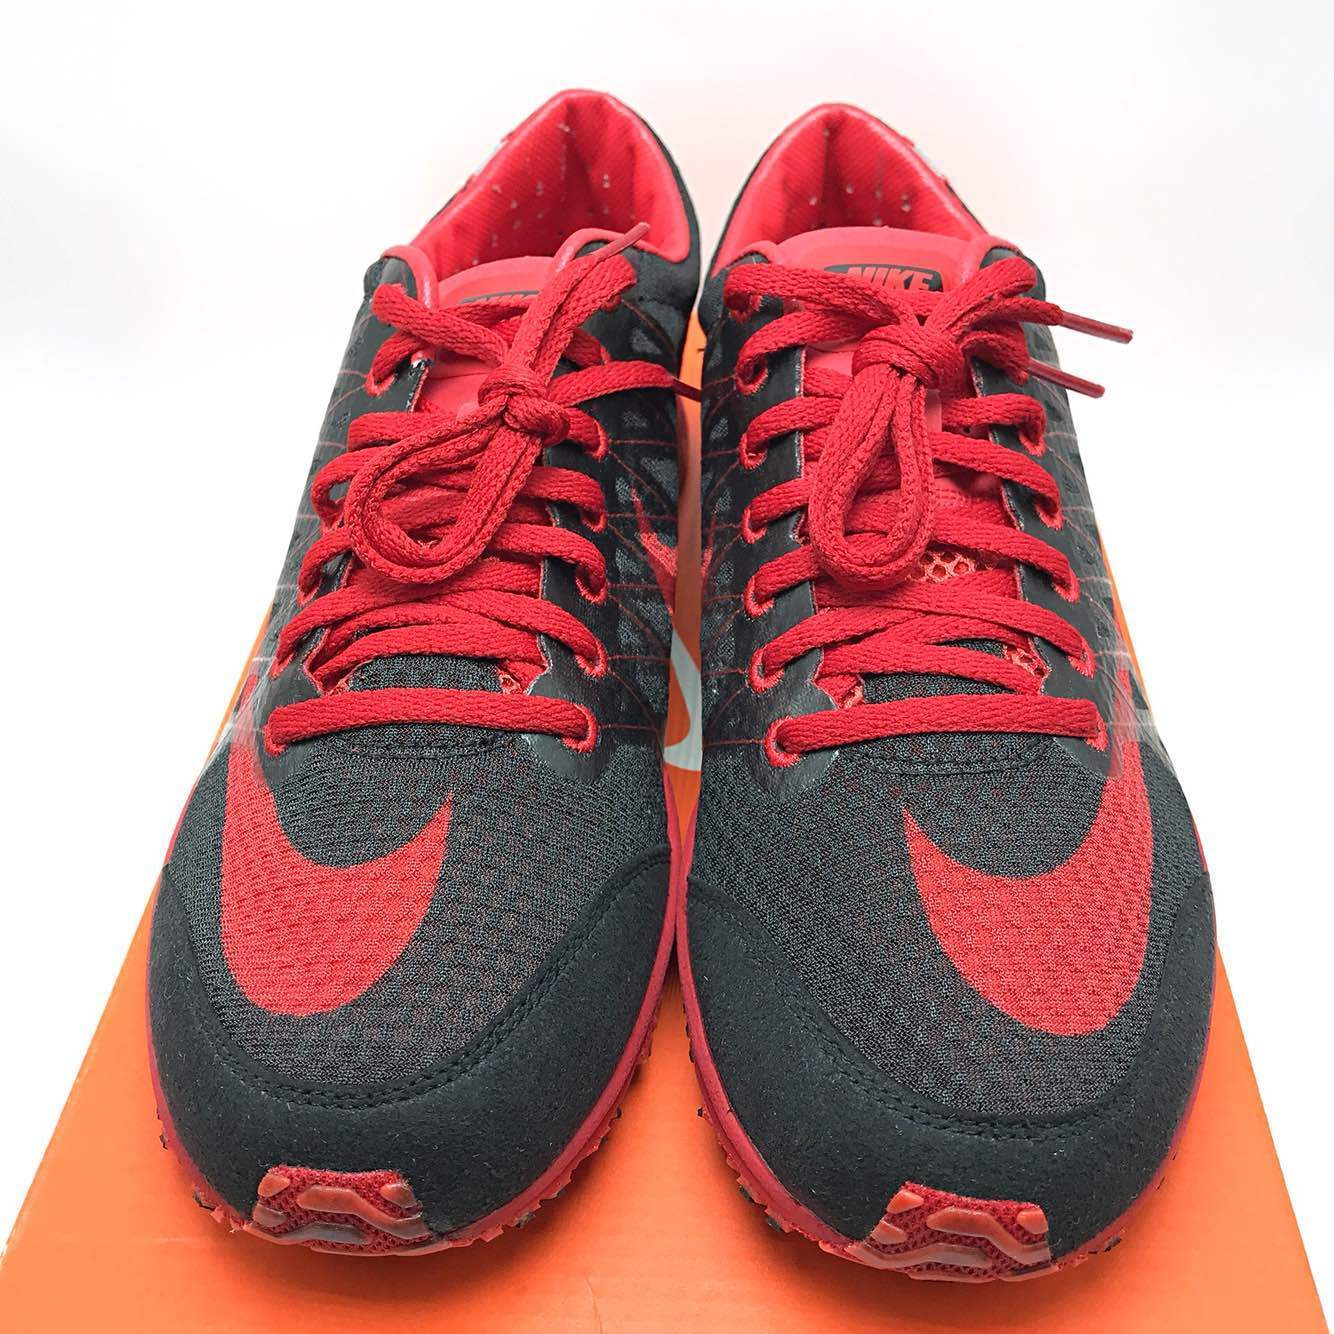 Nike Lunarspider R 3 Men Running Shoes Black/Red/Black 524963-060 Men size 8.5